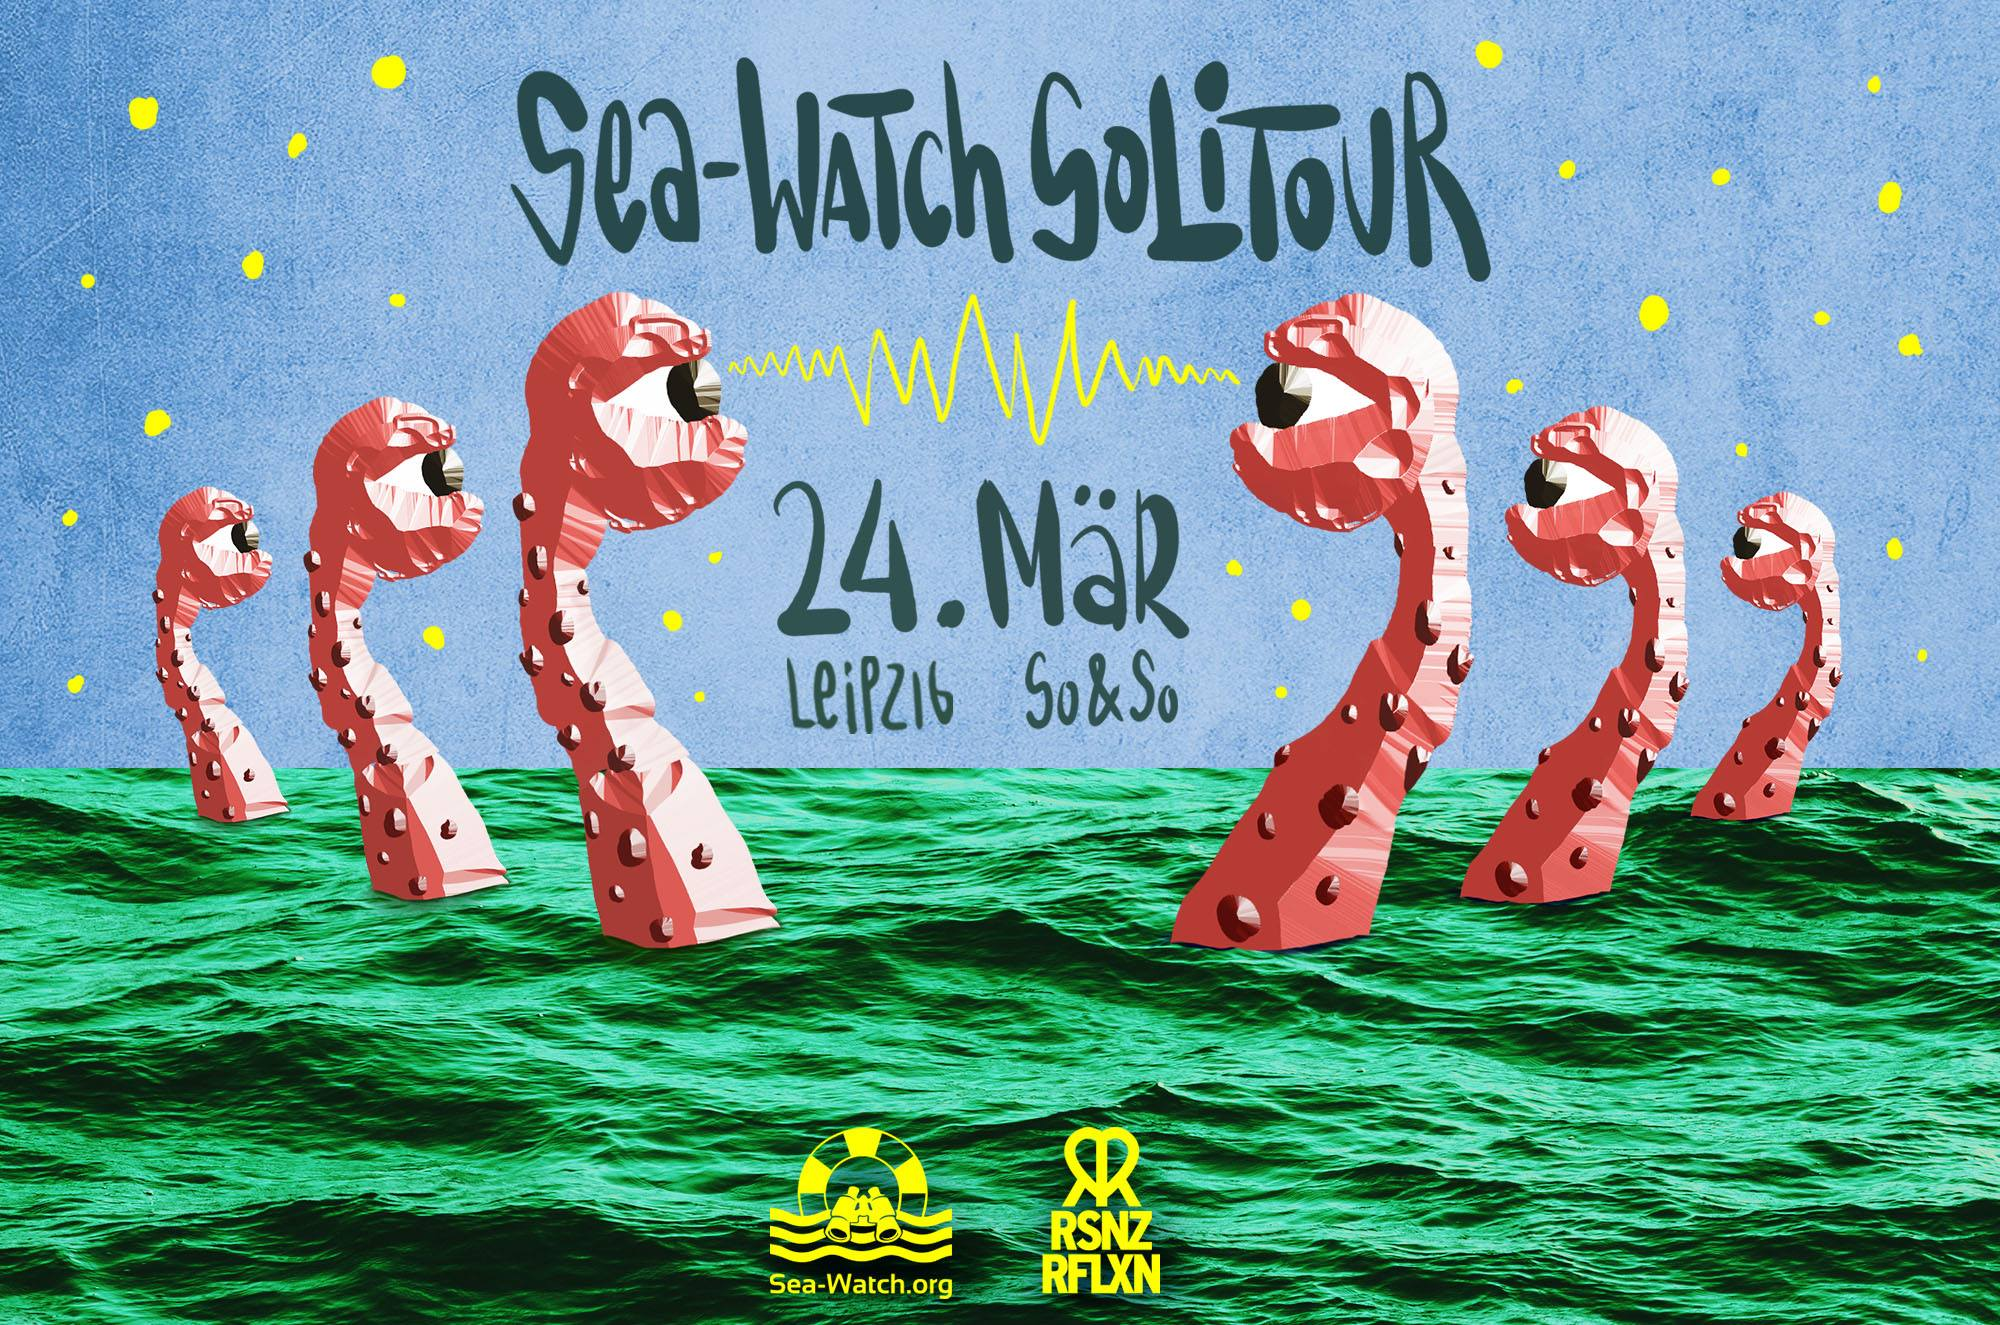 Sea-Watch Solitour in Leipzig